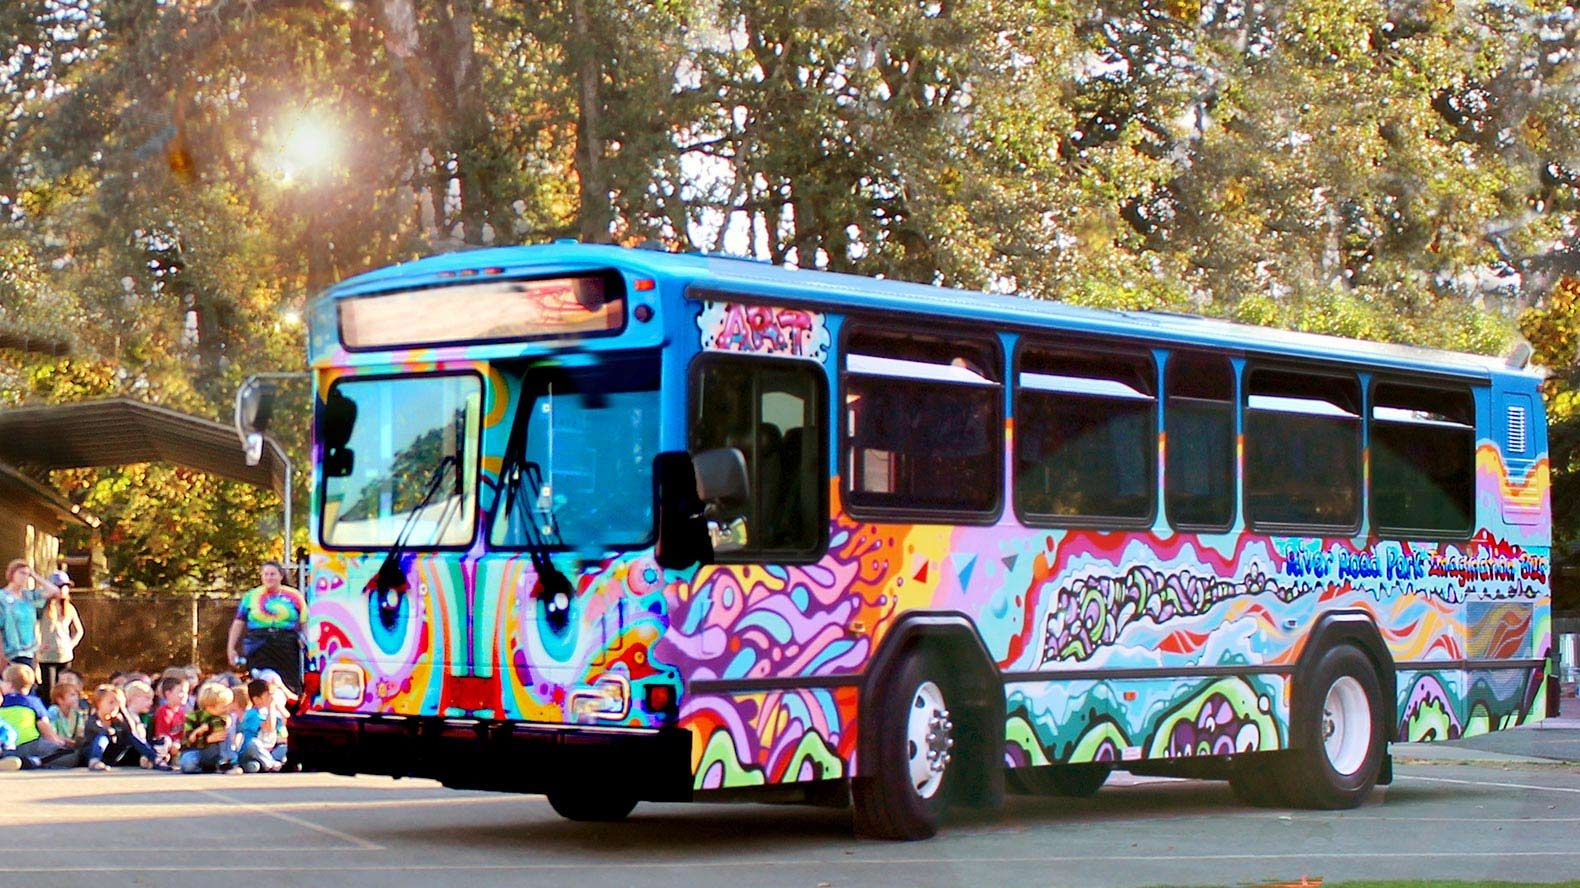 This transit bus turned art studio is the brainchild of park supervisor Dale Weigandt—a response to budget cuts to arts education at his daughter's school in the 1980s. He waited 30 years to realize his dream.